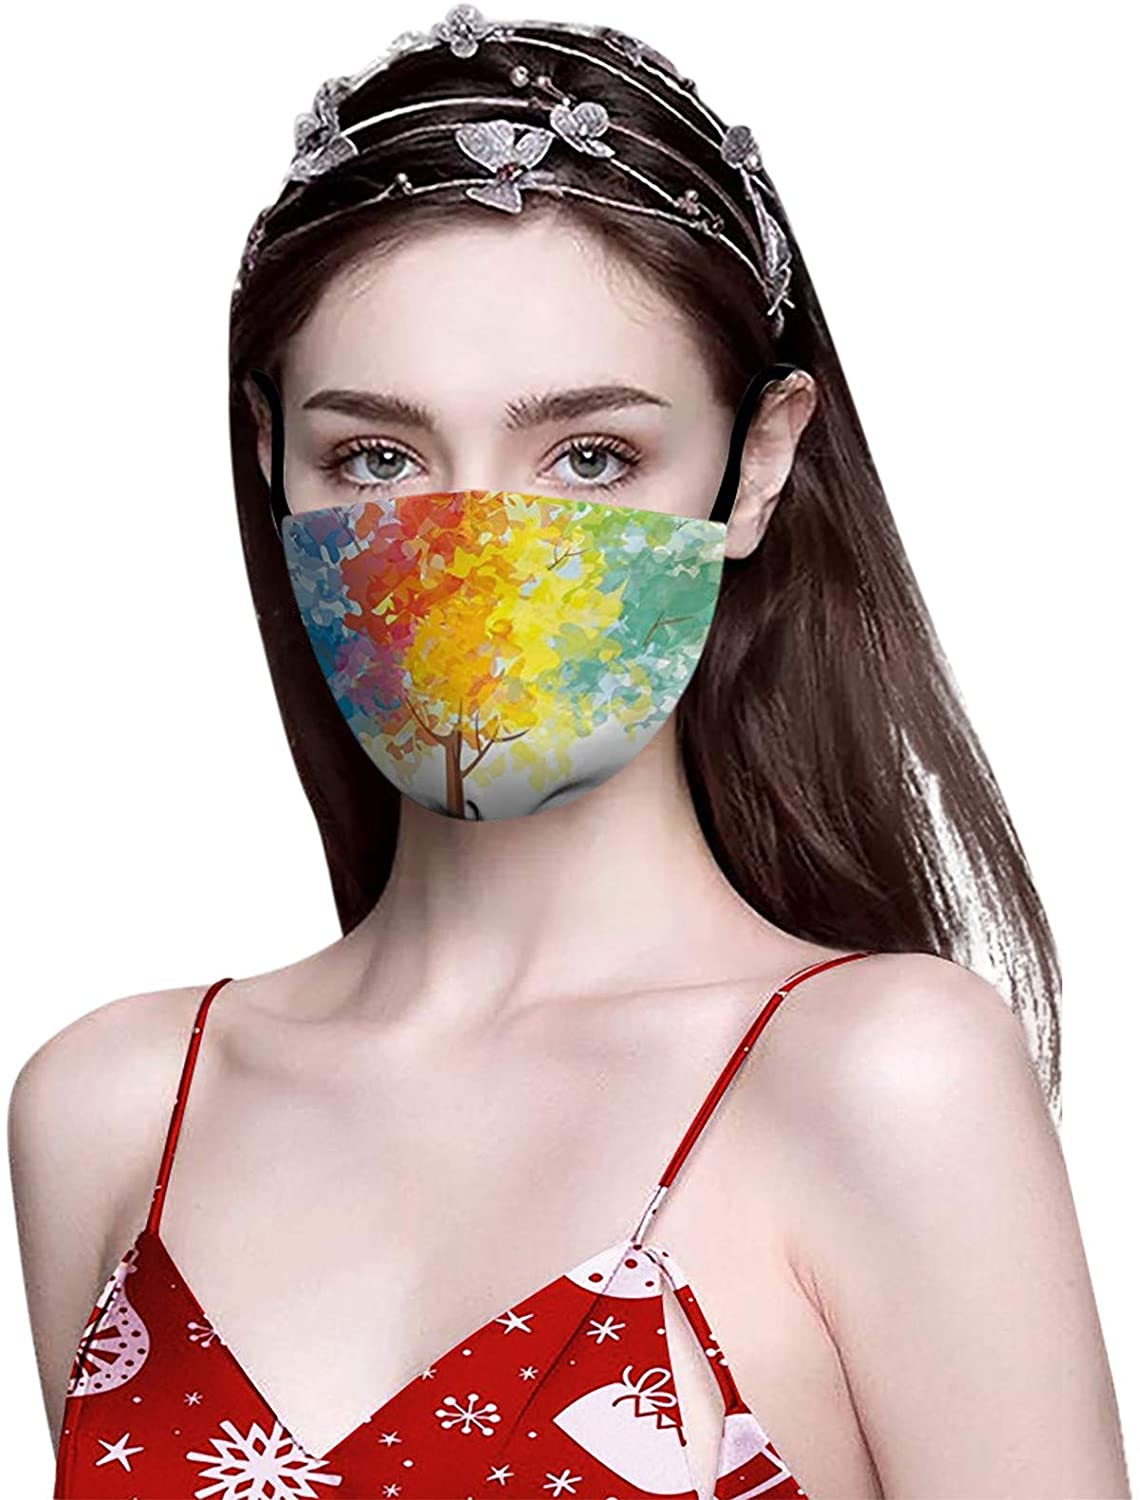 Giveyo [Ships from USA] Happy Thankful Grateful Blessed Thanksgiving Face_mask, Adult Printing Windproof Anti-spitting Breathable Reusable Washable Mouth Covering, Thanksgiving Best Gift (A3:1pc)